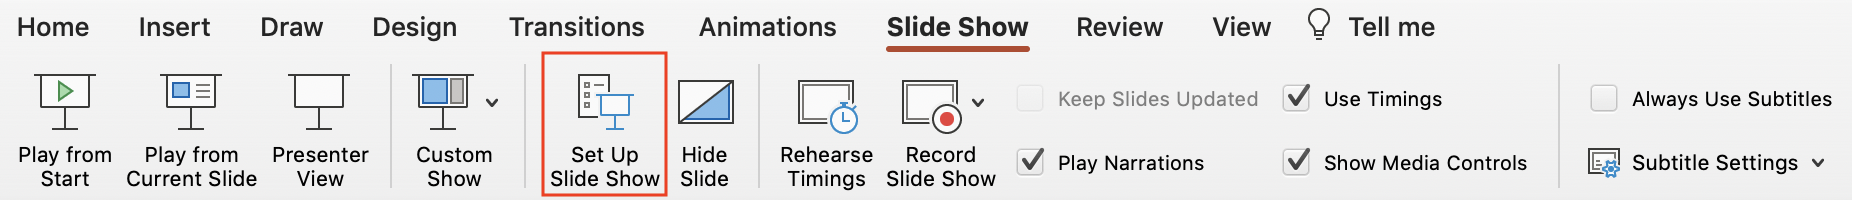 Set-up_slide_show.png